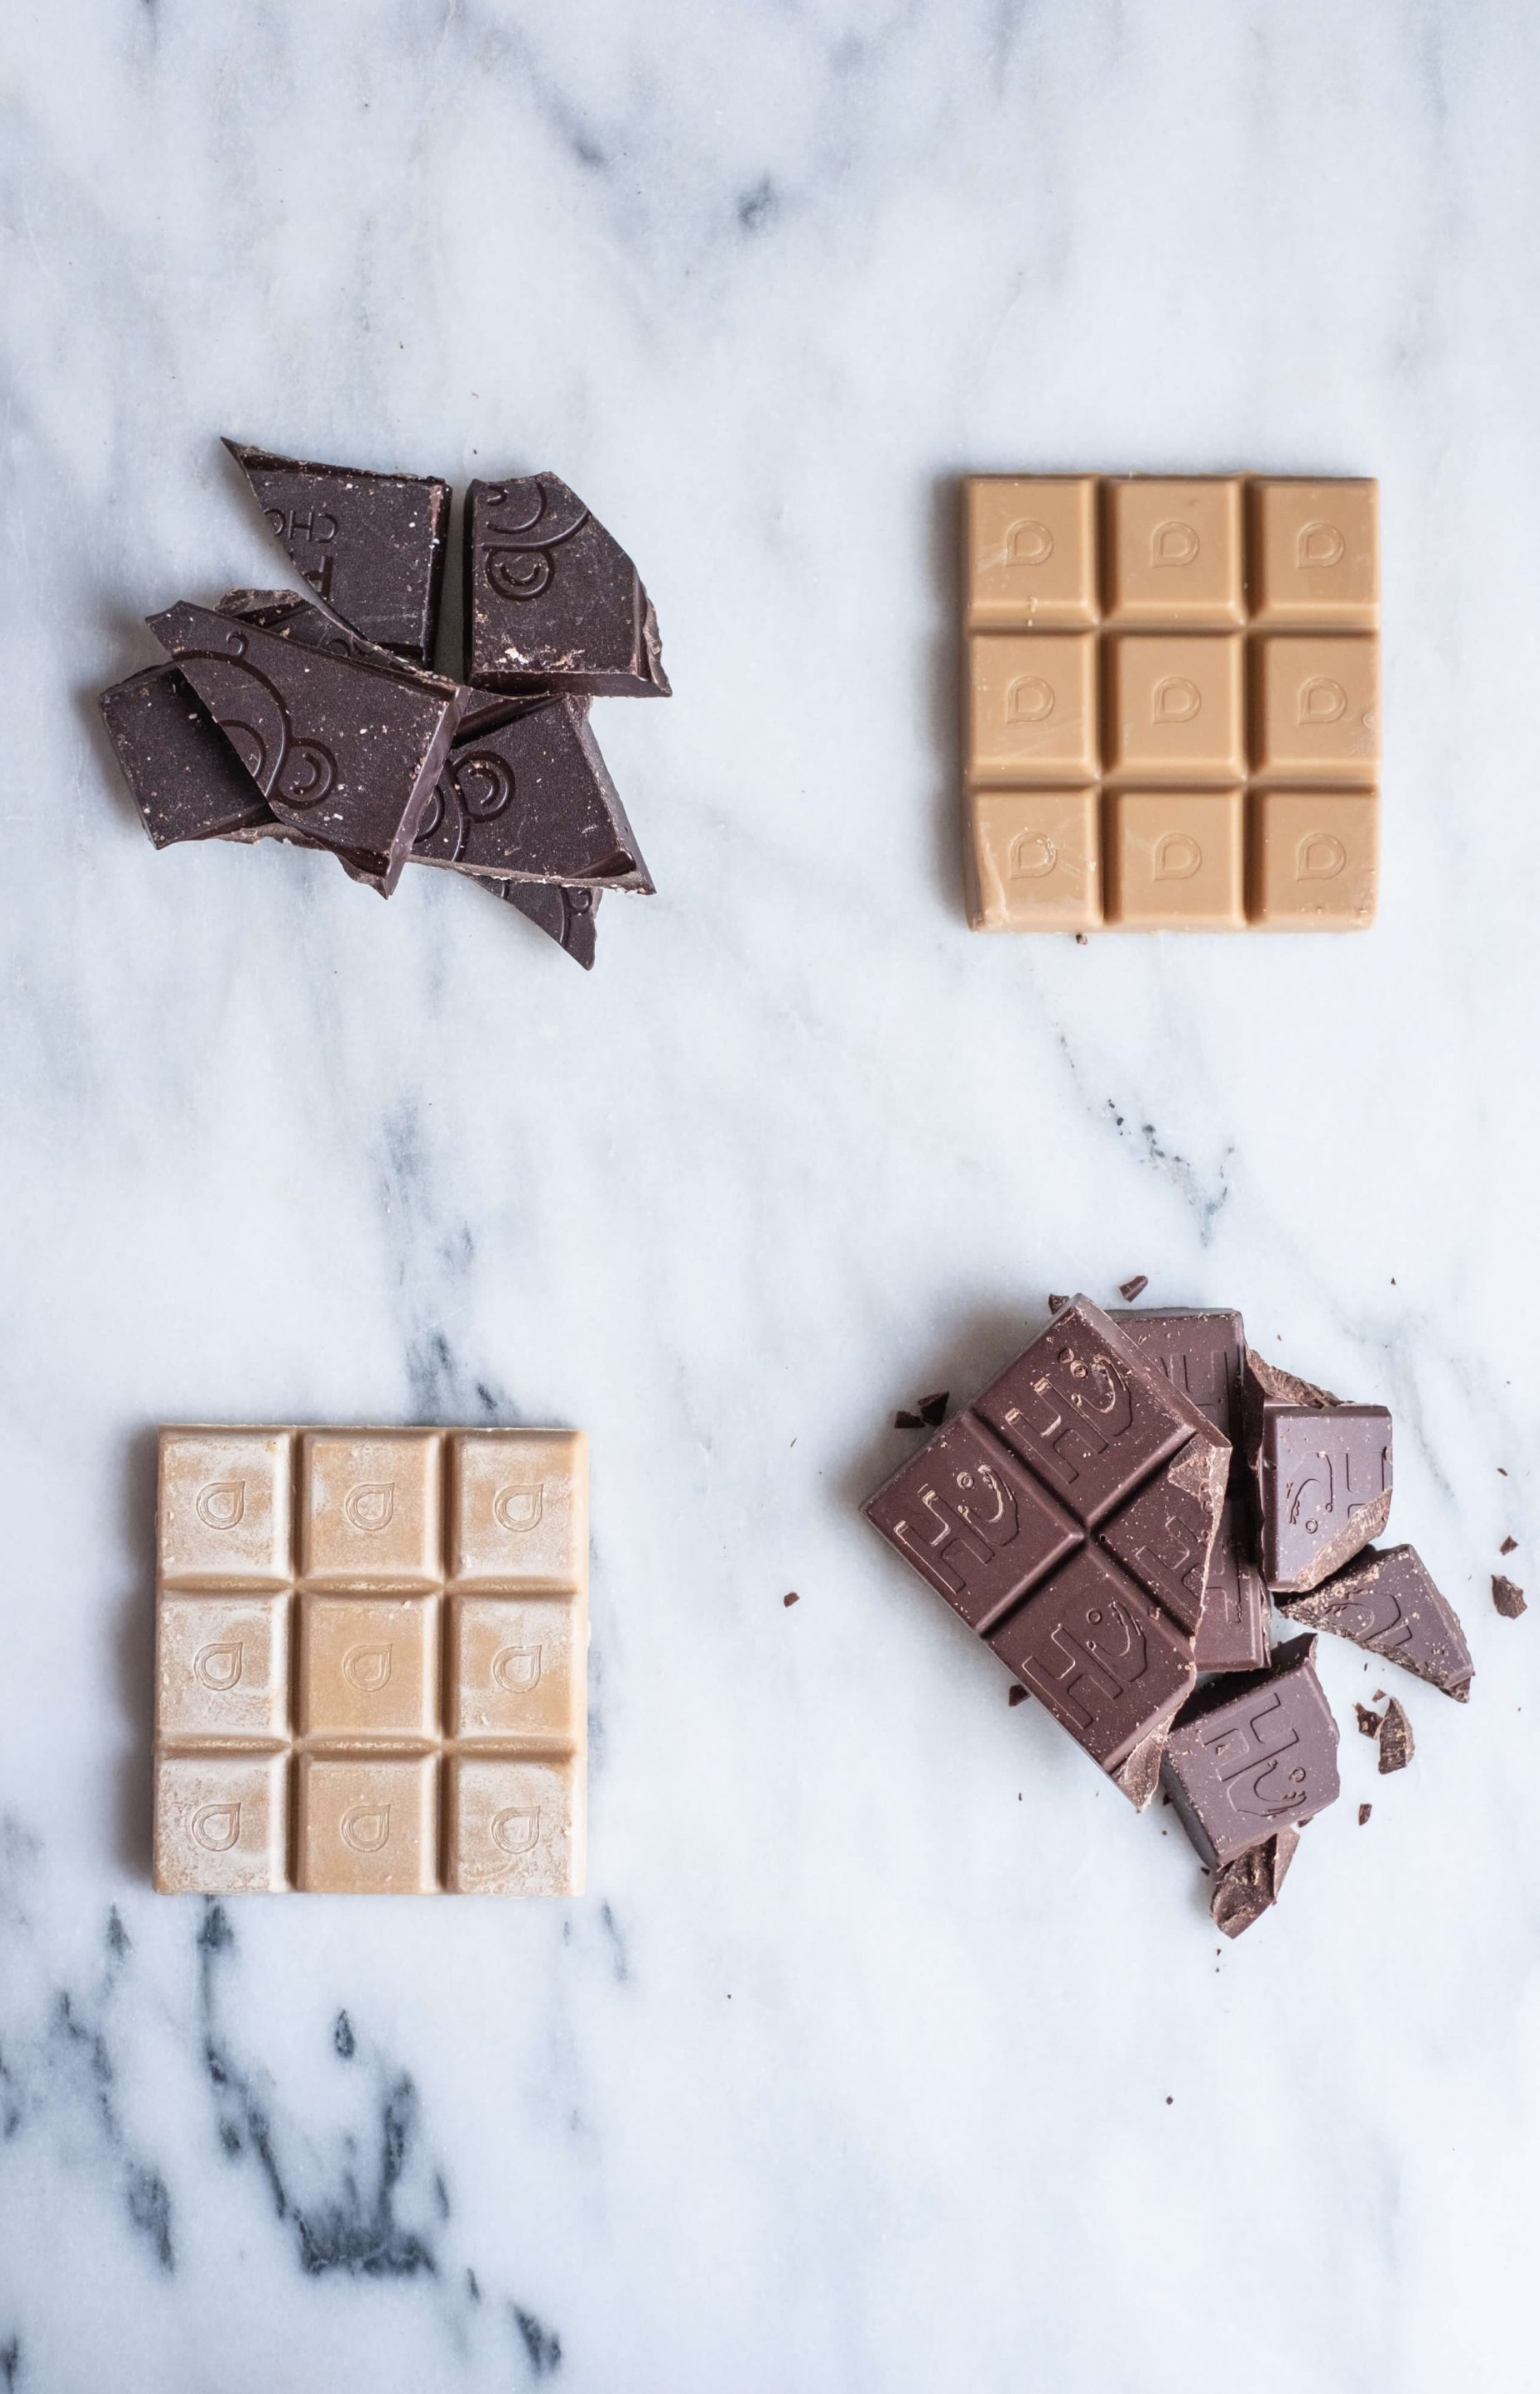 Vegan Chocolate- My Top Picks For Every Chocolate Lover #whatsavvysaid #veganchocolate #paleochocolate #lovingearth #eatingevolved #hukitchen #refinedsugarfree #vegan #glutenfree